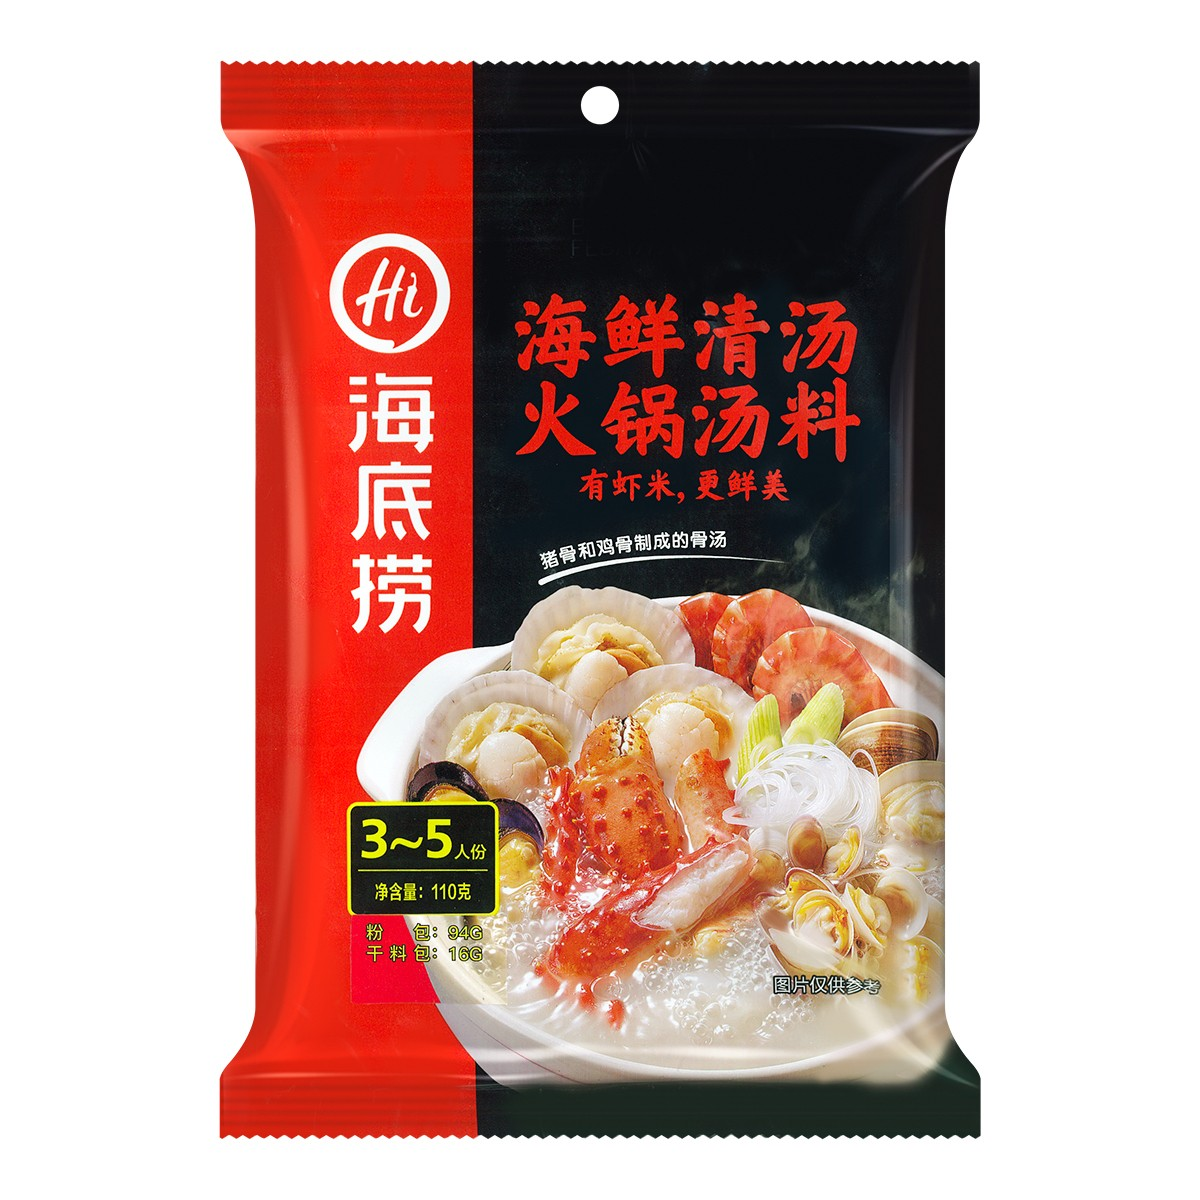 HAIDILAO Shrimp Hot Pot Base 110g